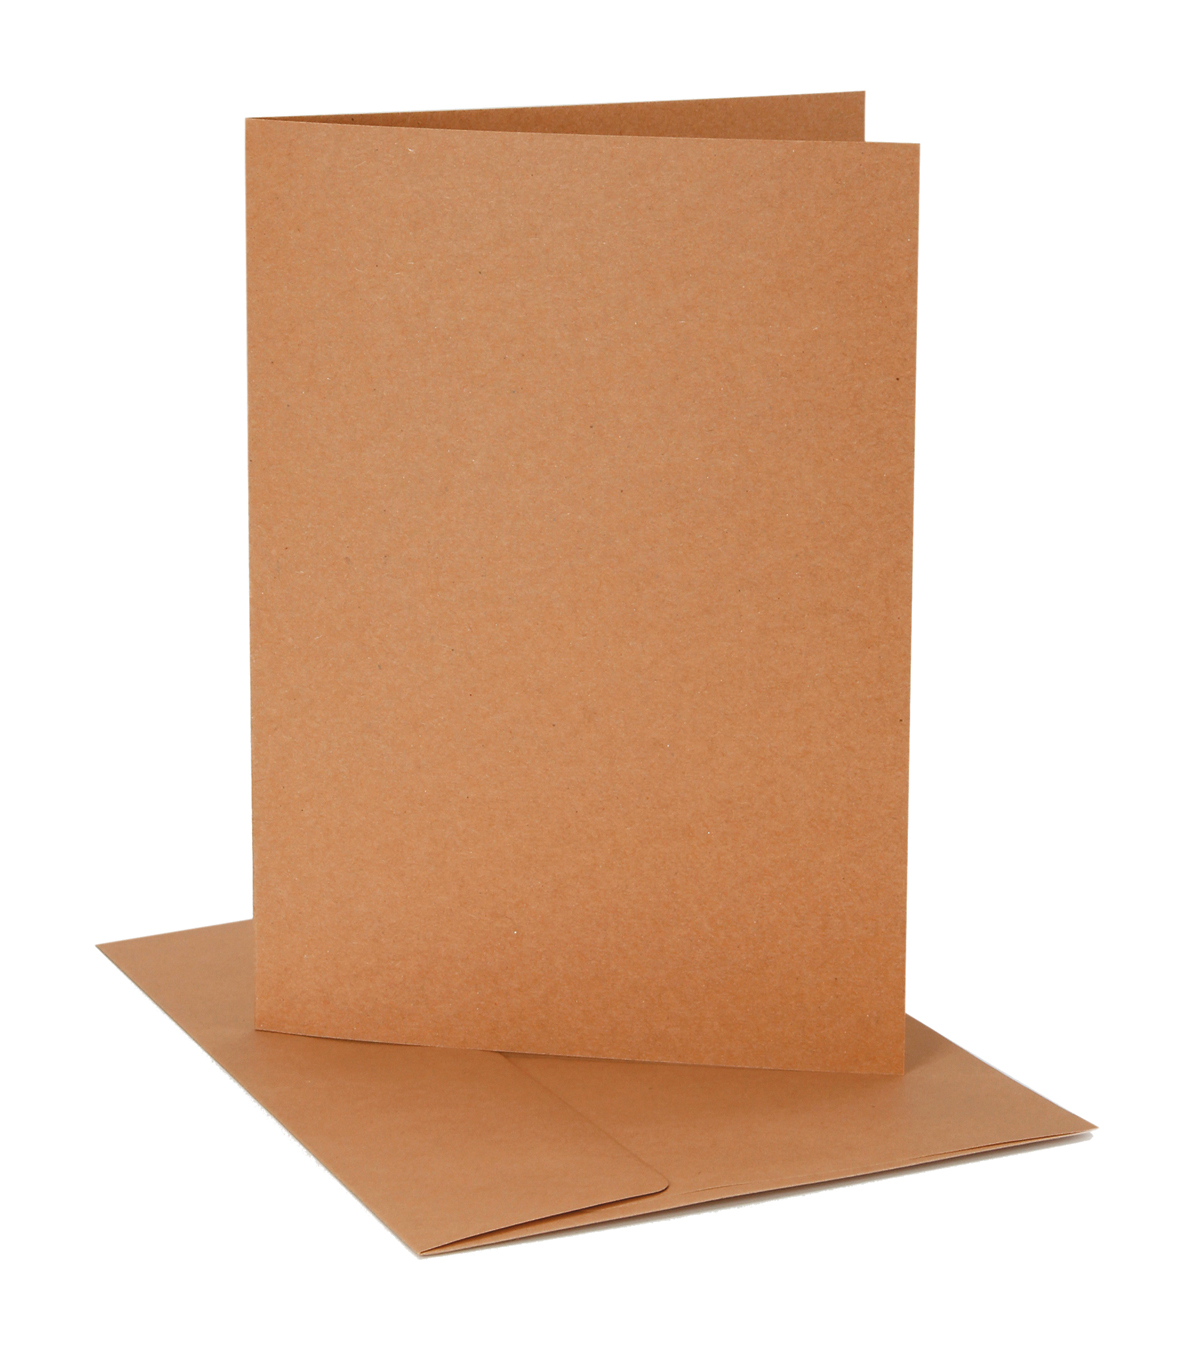 Core'dinations Card/Envelopes:  A1 Kraft; 12 pack